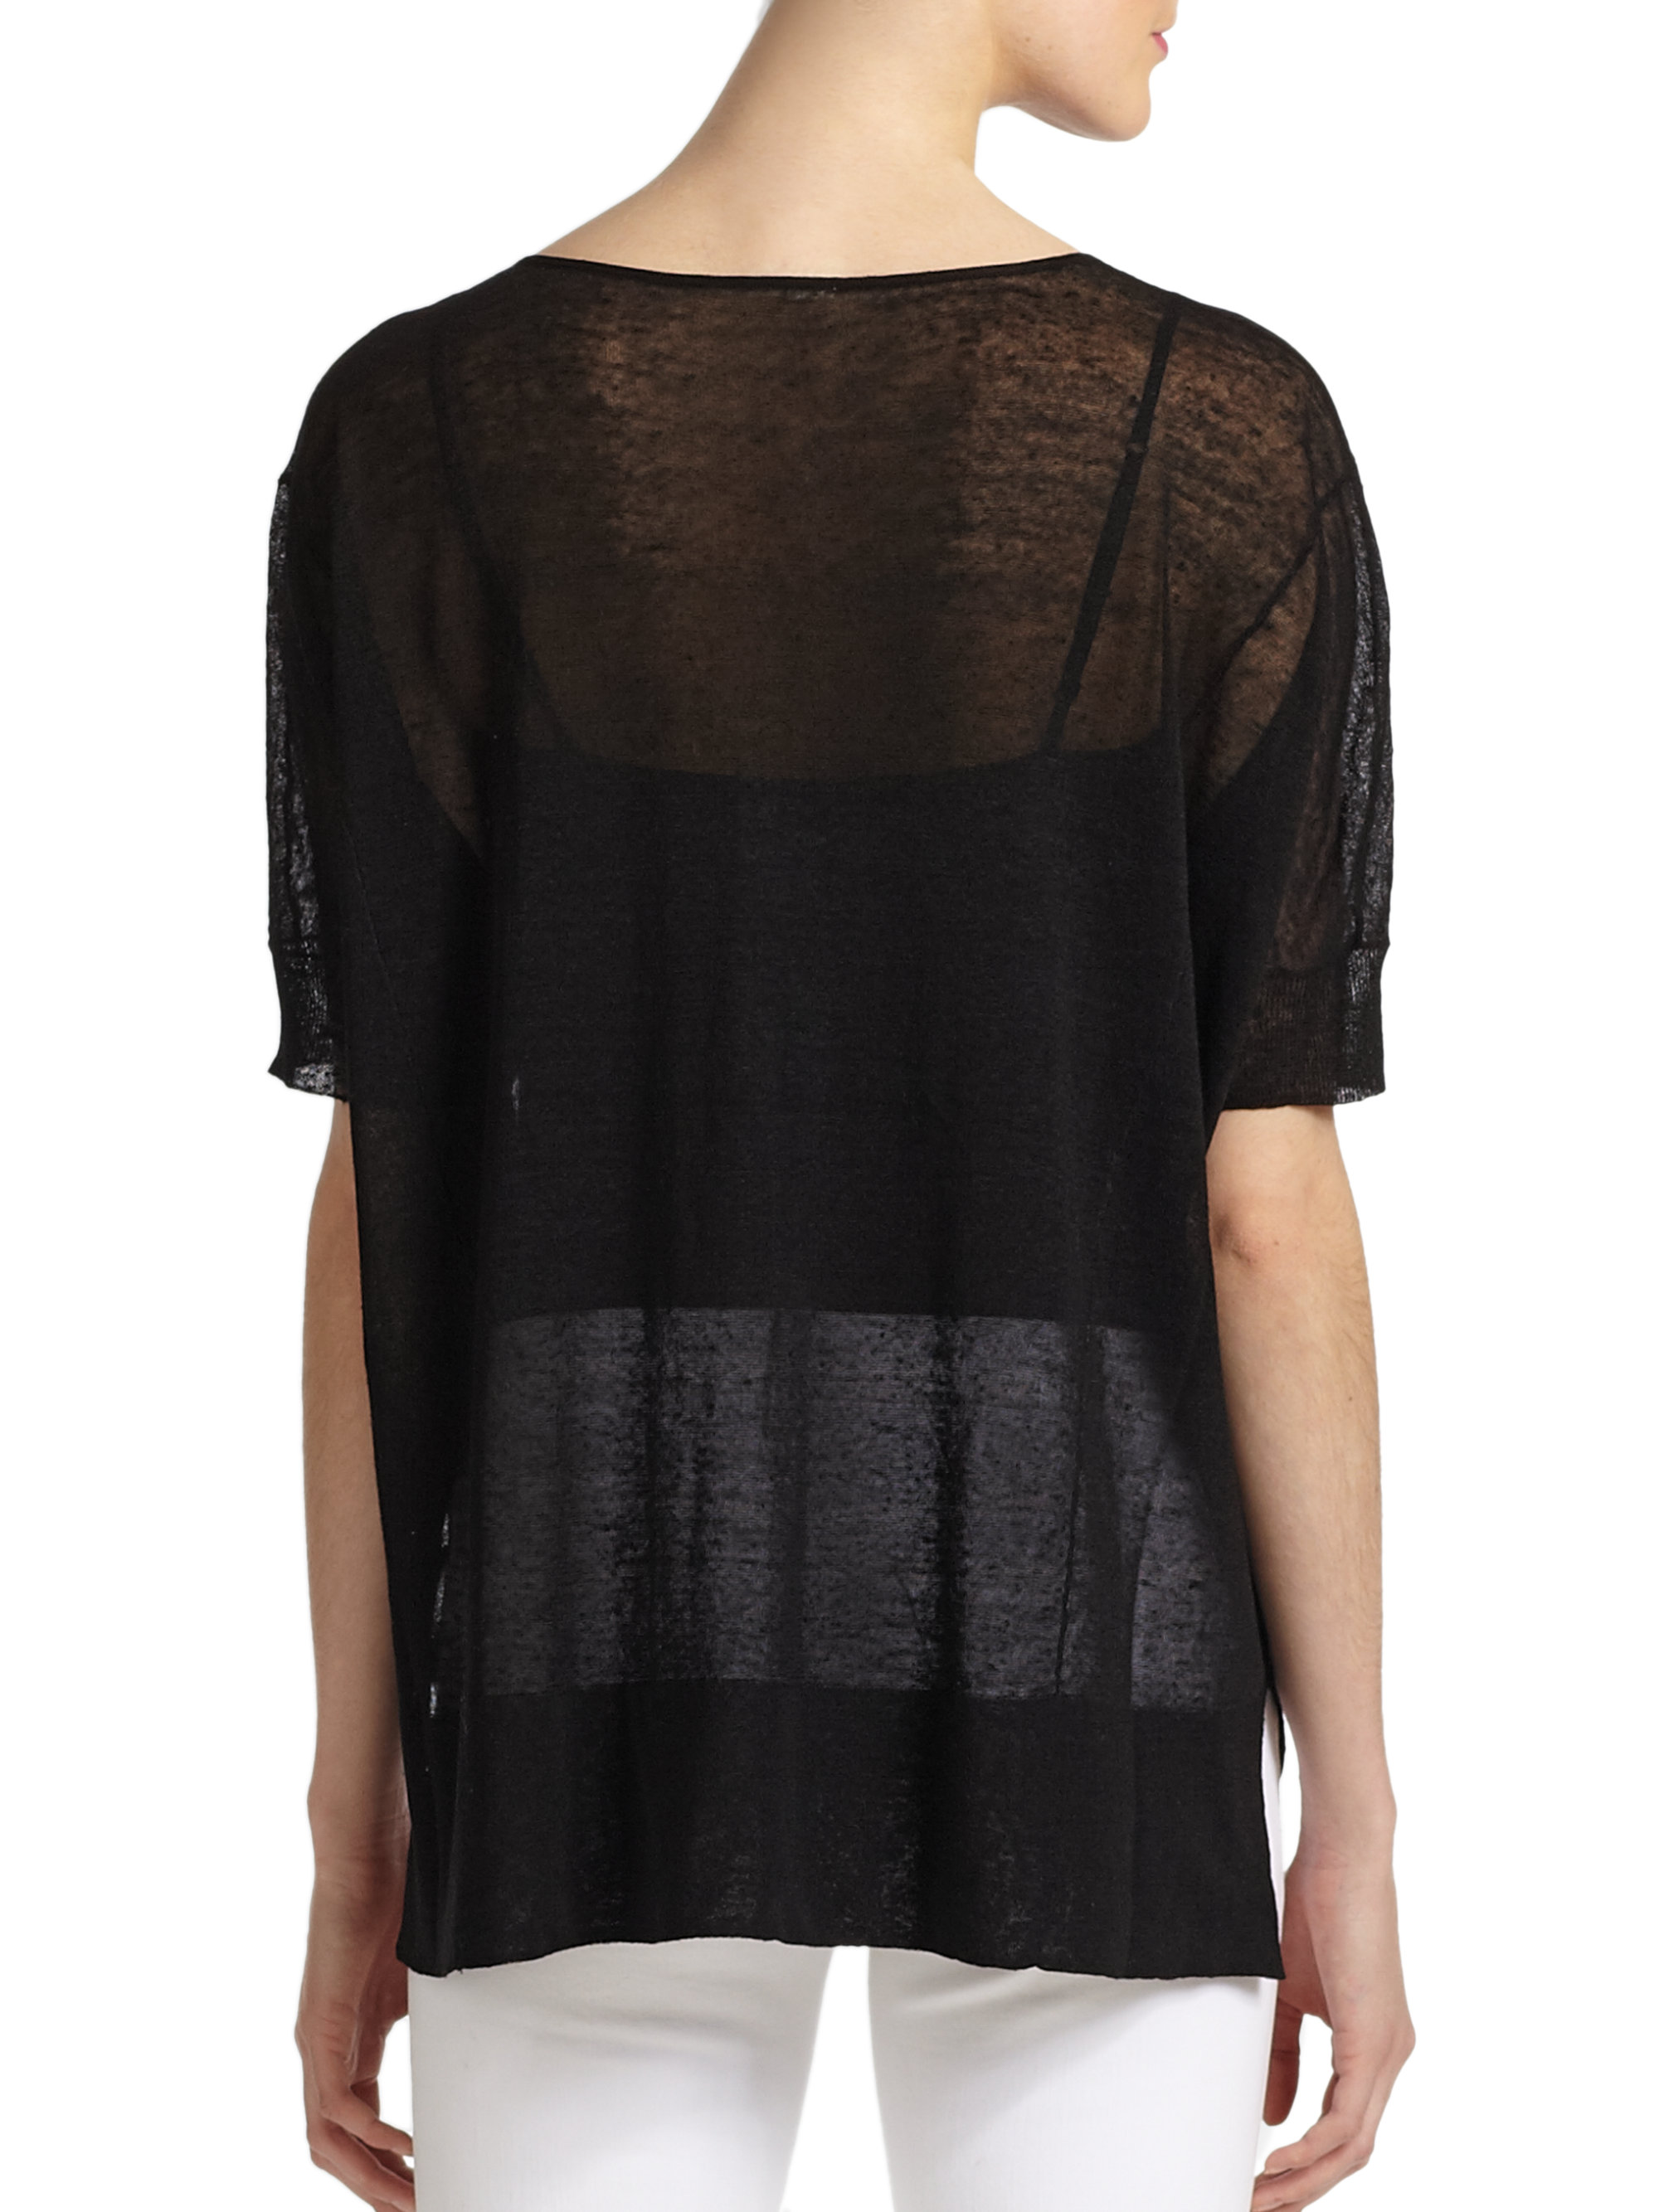 Find great deals on eBay for black sheer cardigan. Shop with confidence.